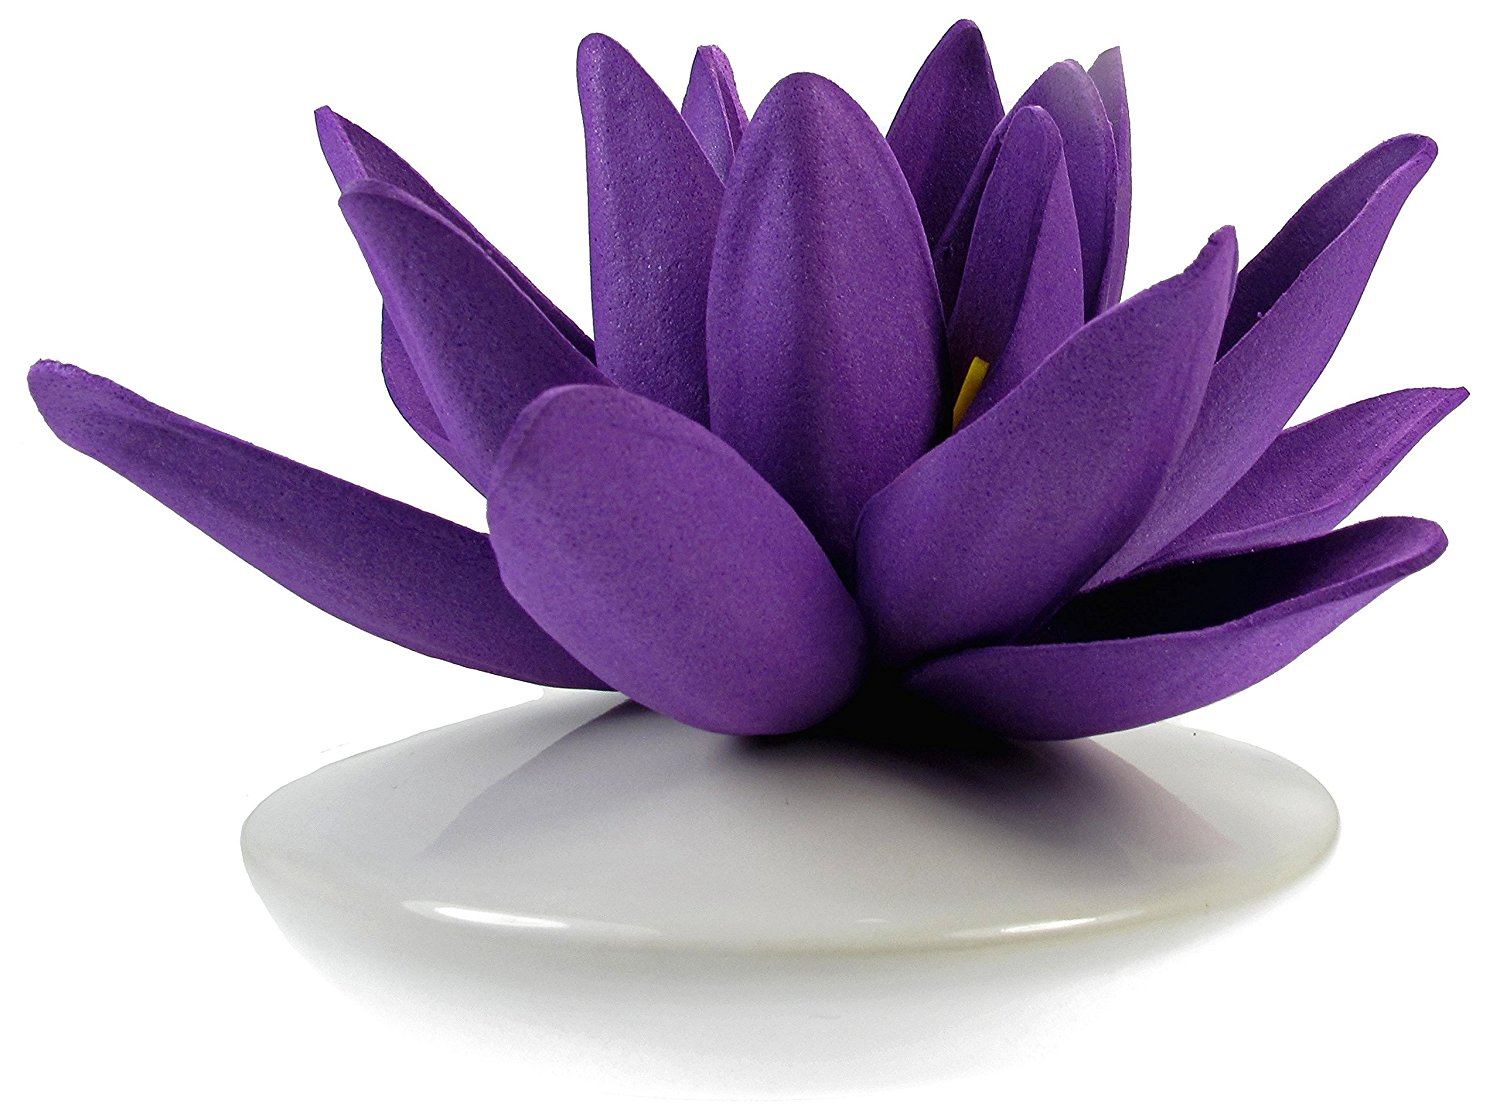 Cheap lily flower bud find lily flower bud deals on line at alibaba get quotations artificial water lily foam flower with a white ceramic bud vase purple izmirmasajfo